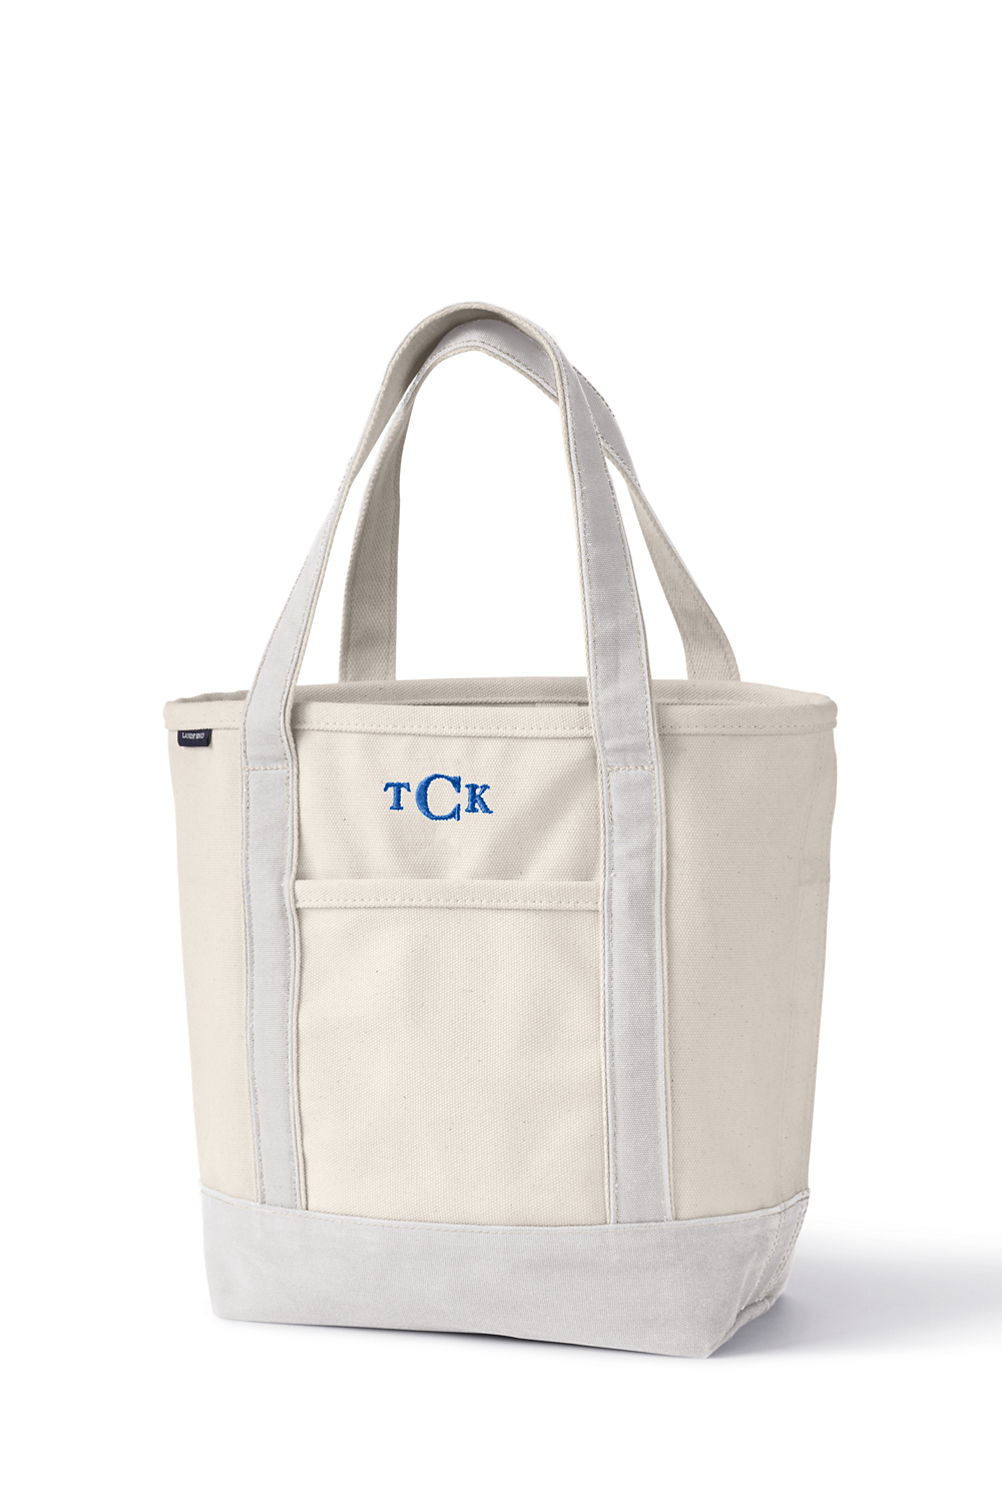 school uniform natural canvas tote bag from lands end